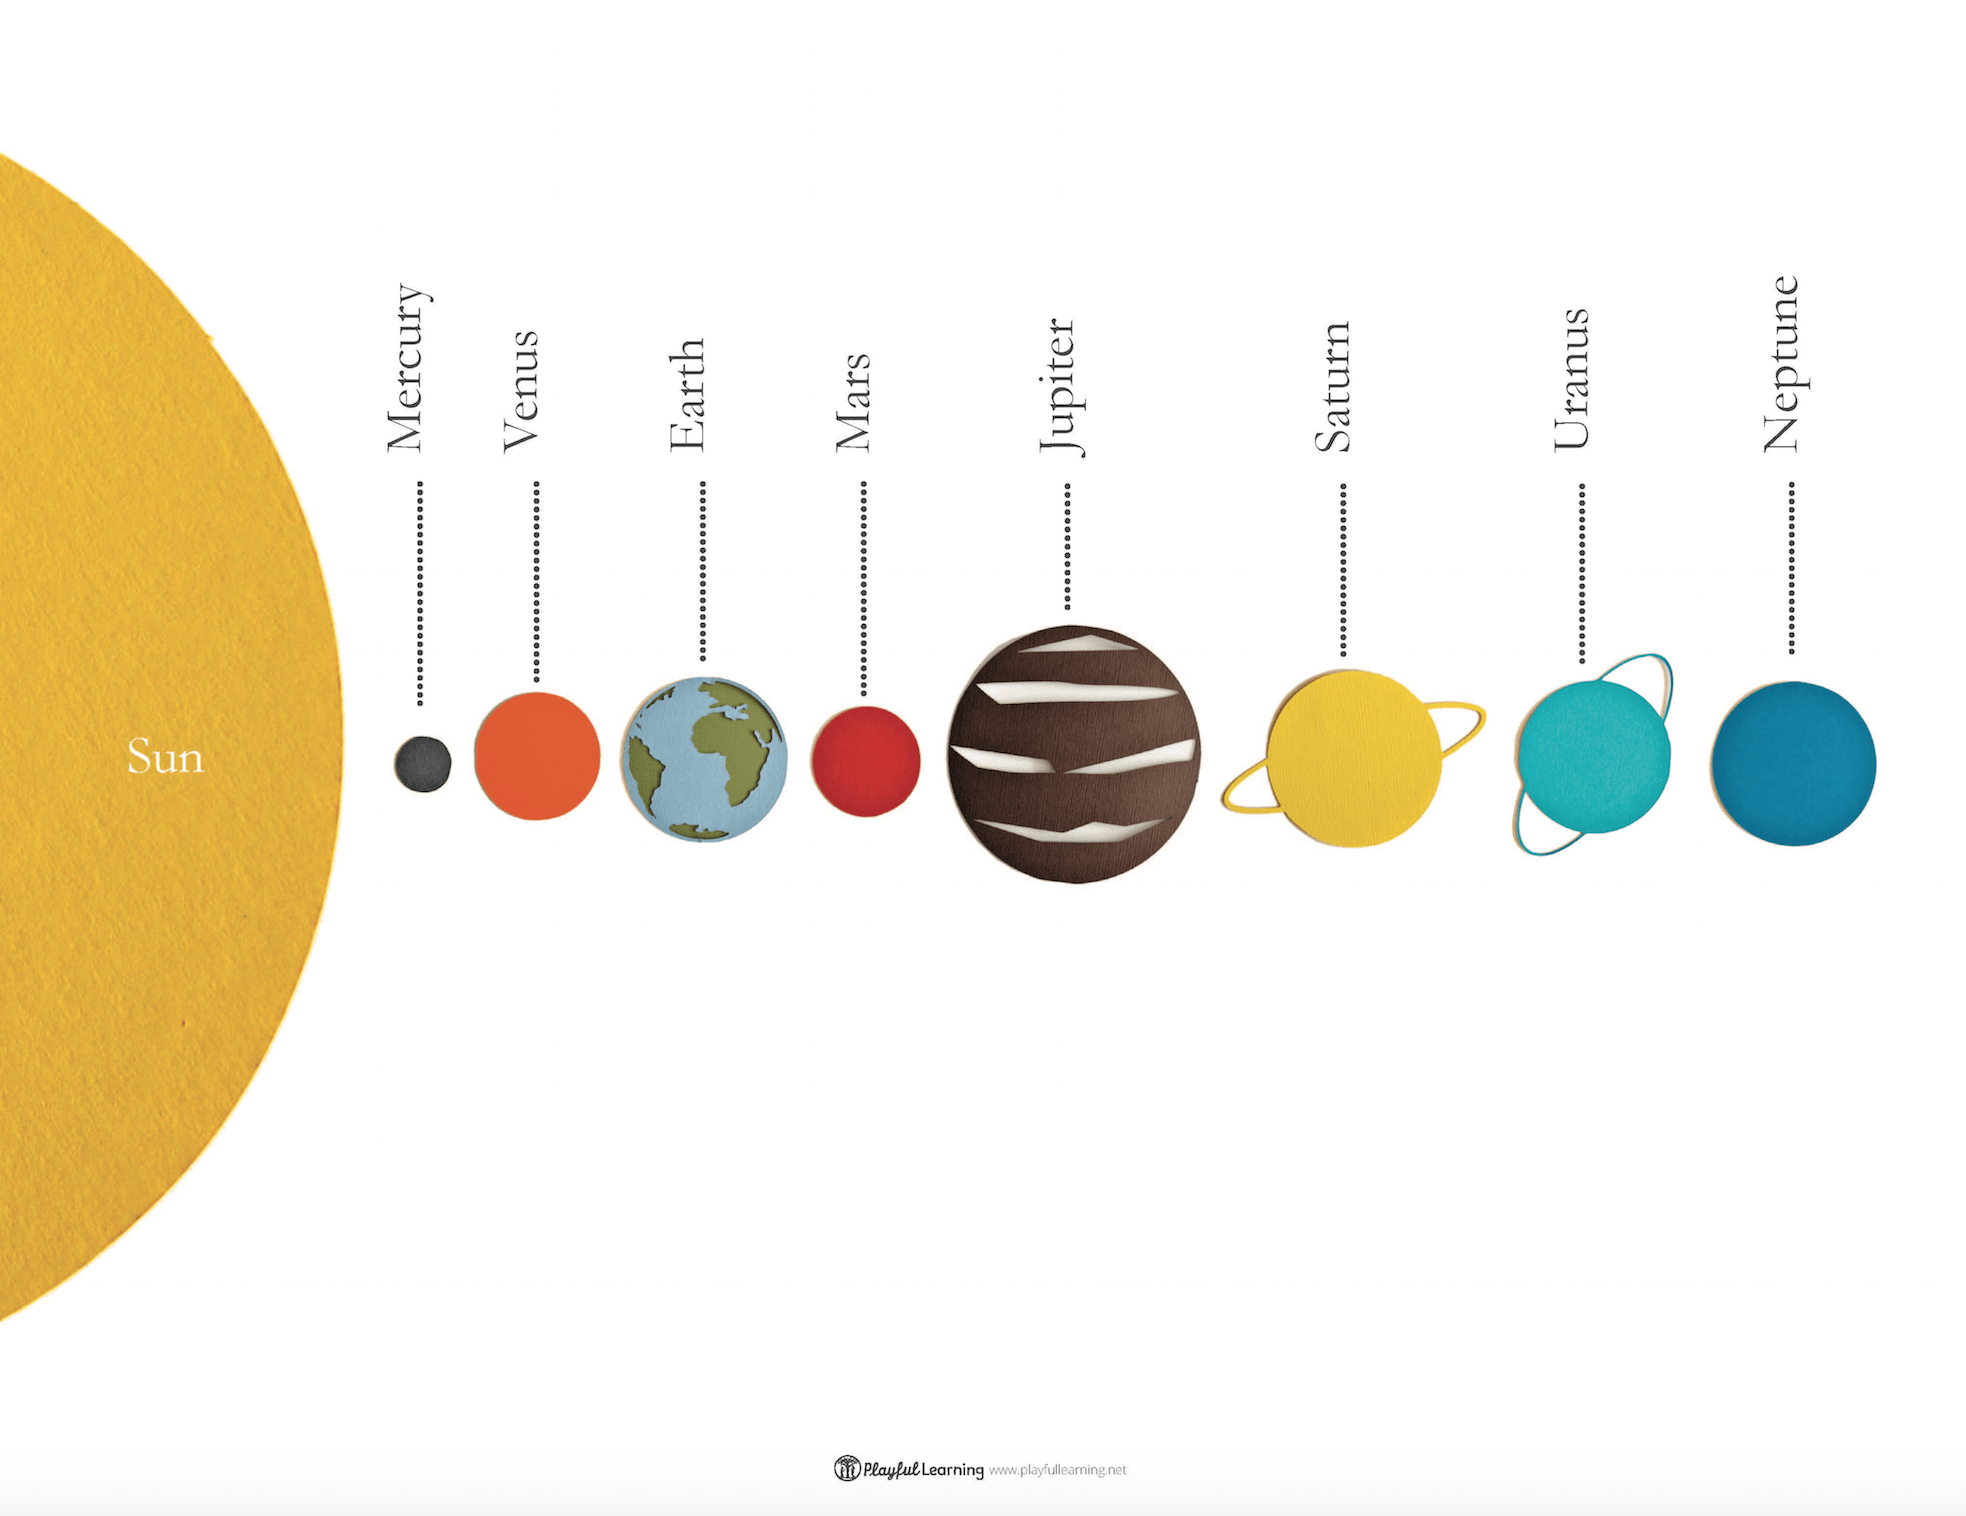 Playful Learning The Solar System